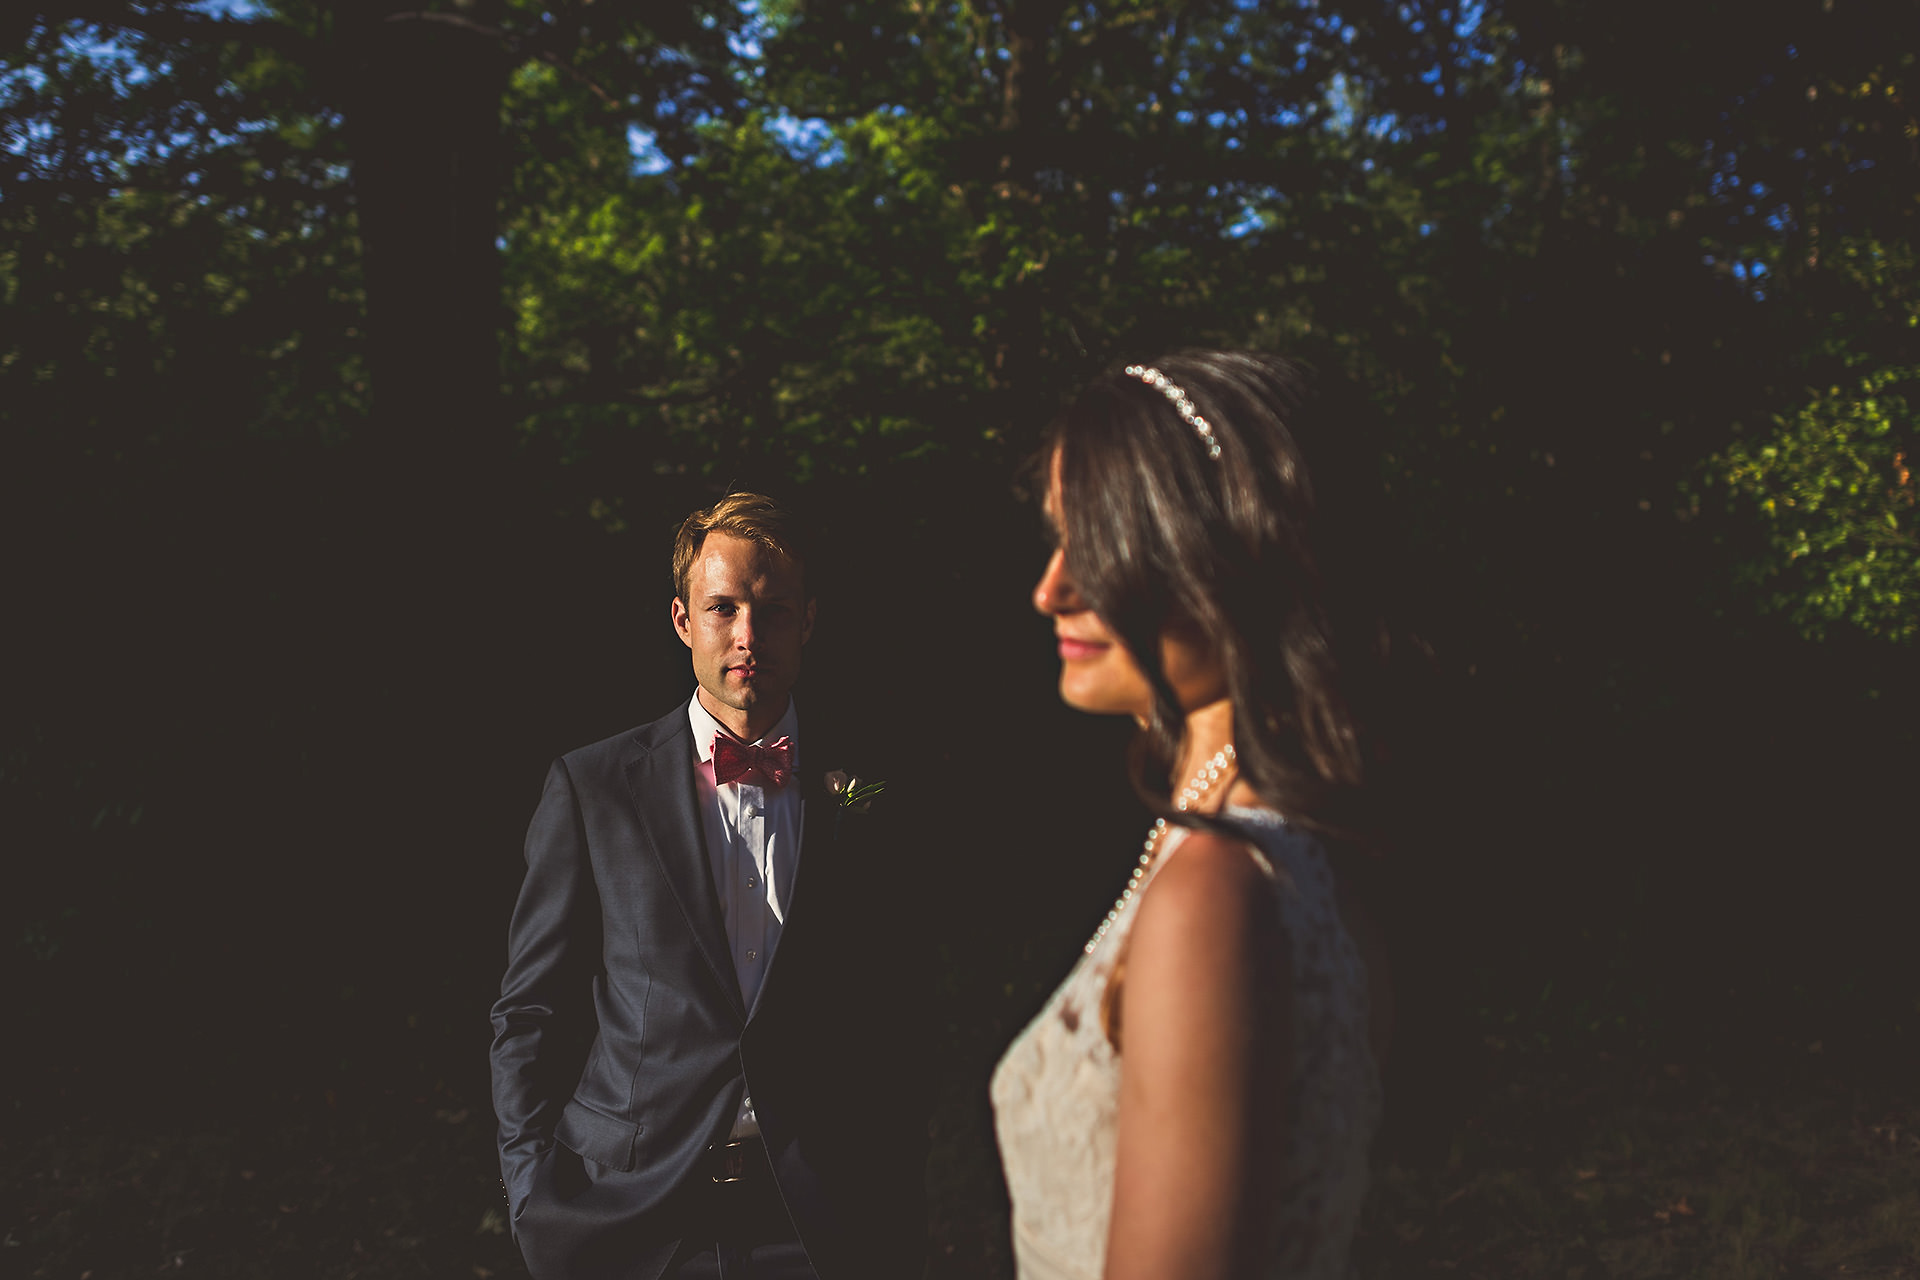 Creative Boston wedding photographers